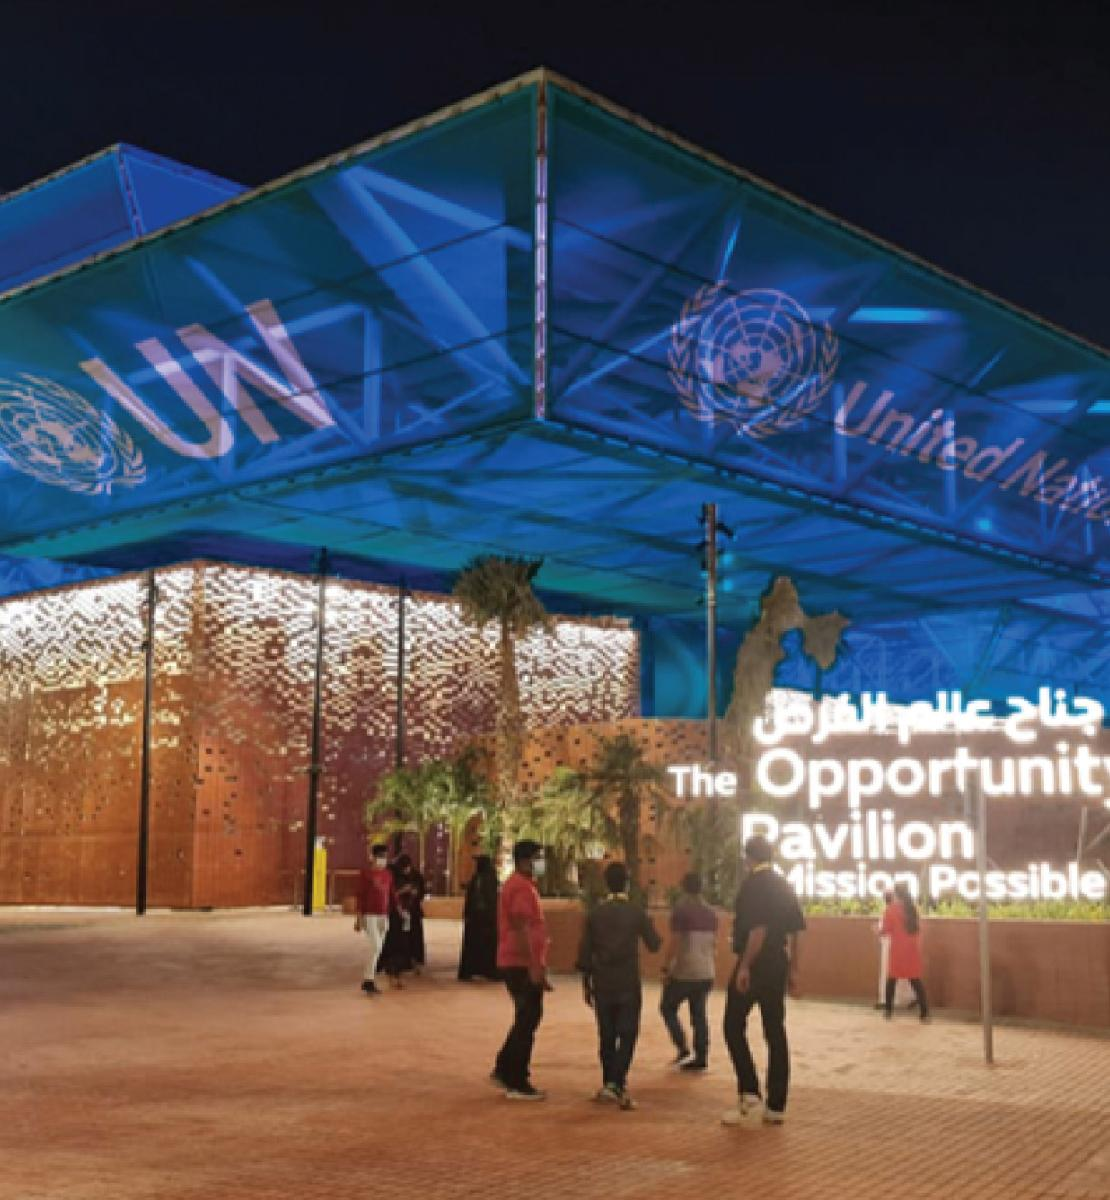 A photo of the exterior of the expo centre, showing people outside in the evening with text projected onto the building.